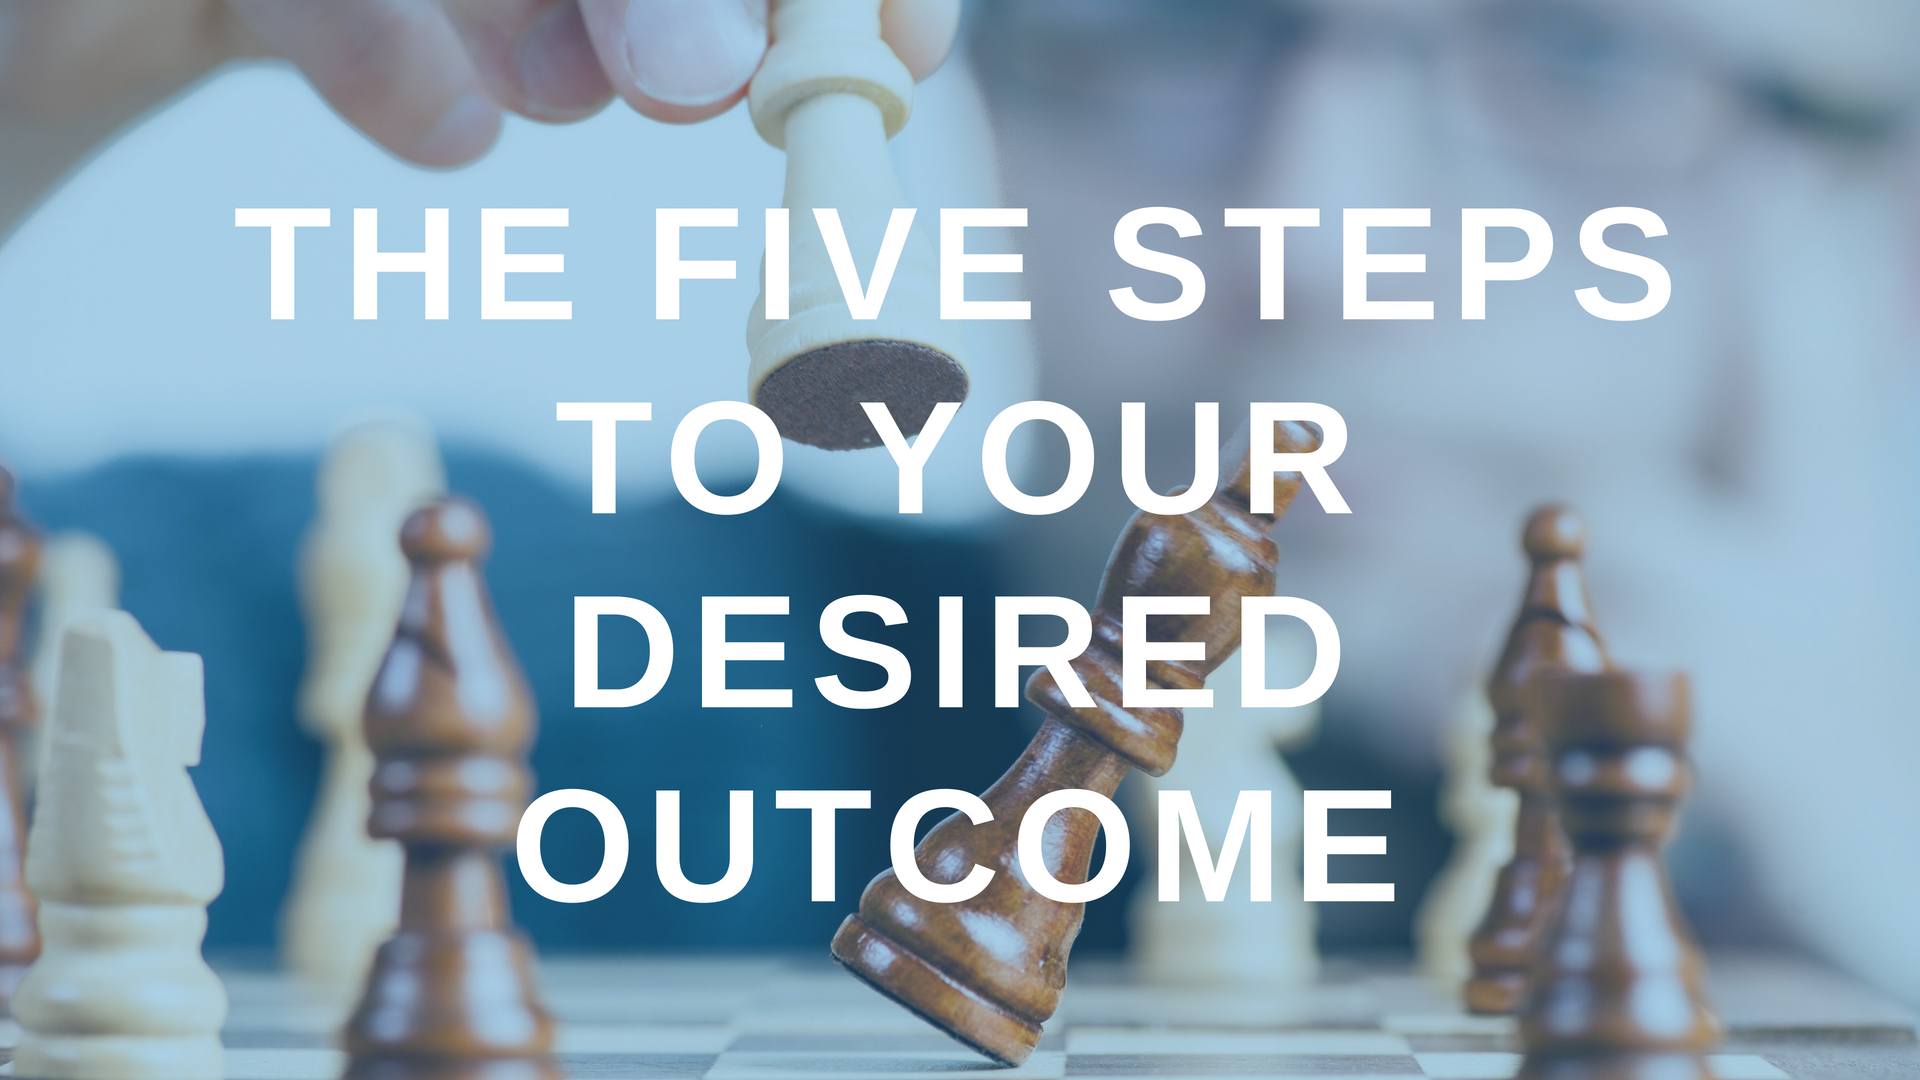 The Five Steps to Your Desired Outcome